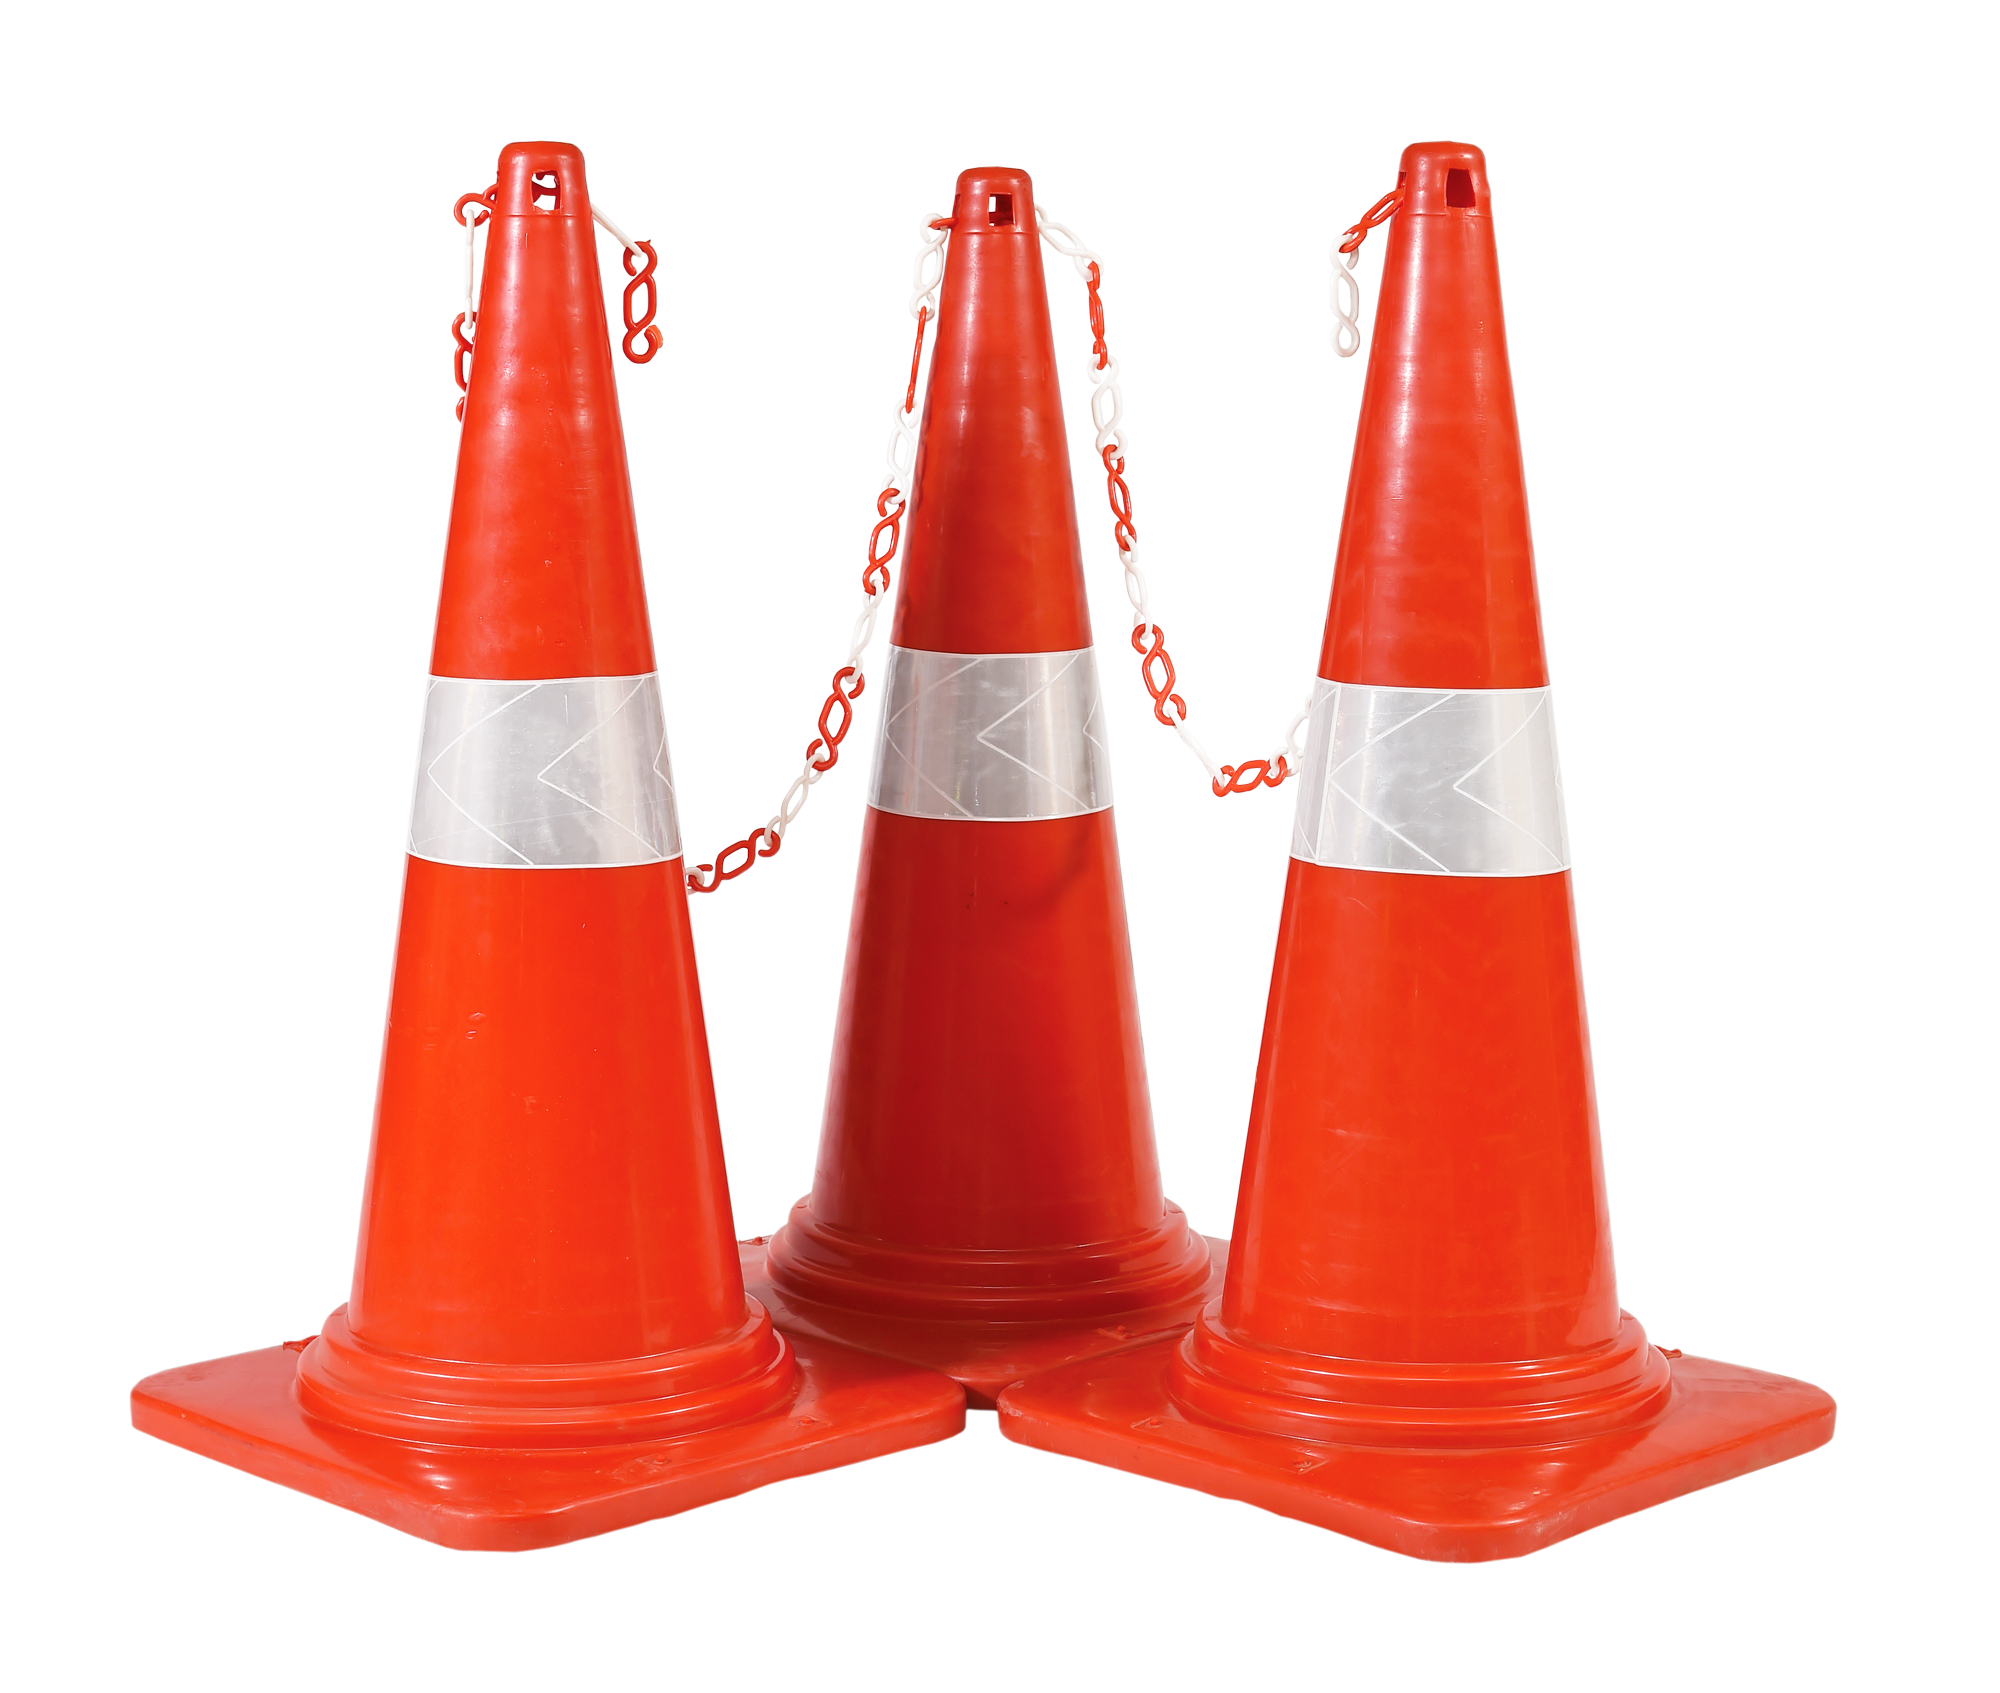 Traffic Cone PNG Image